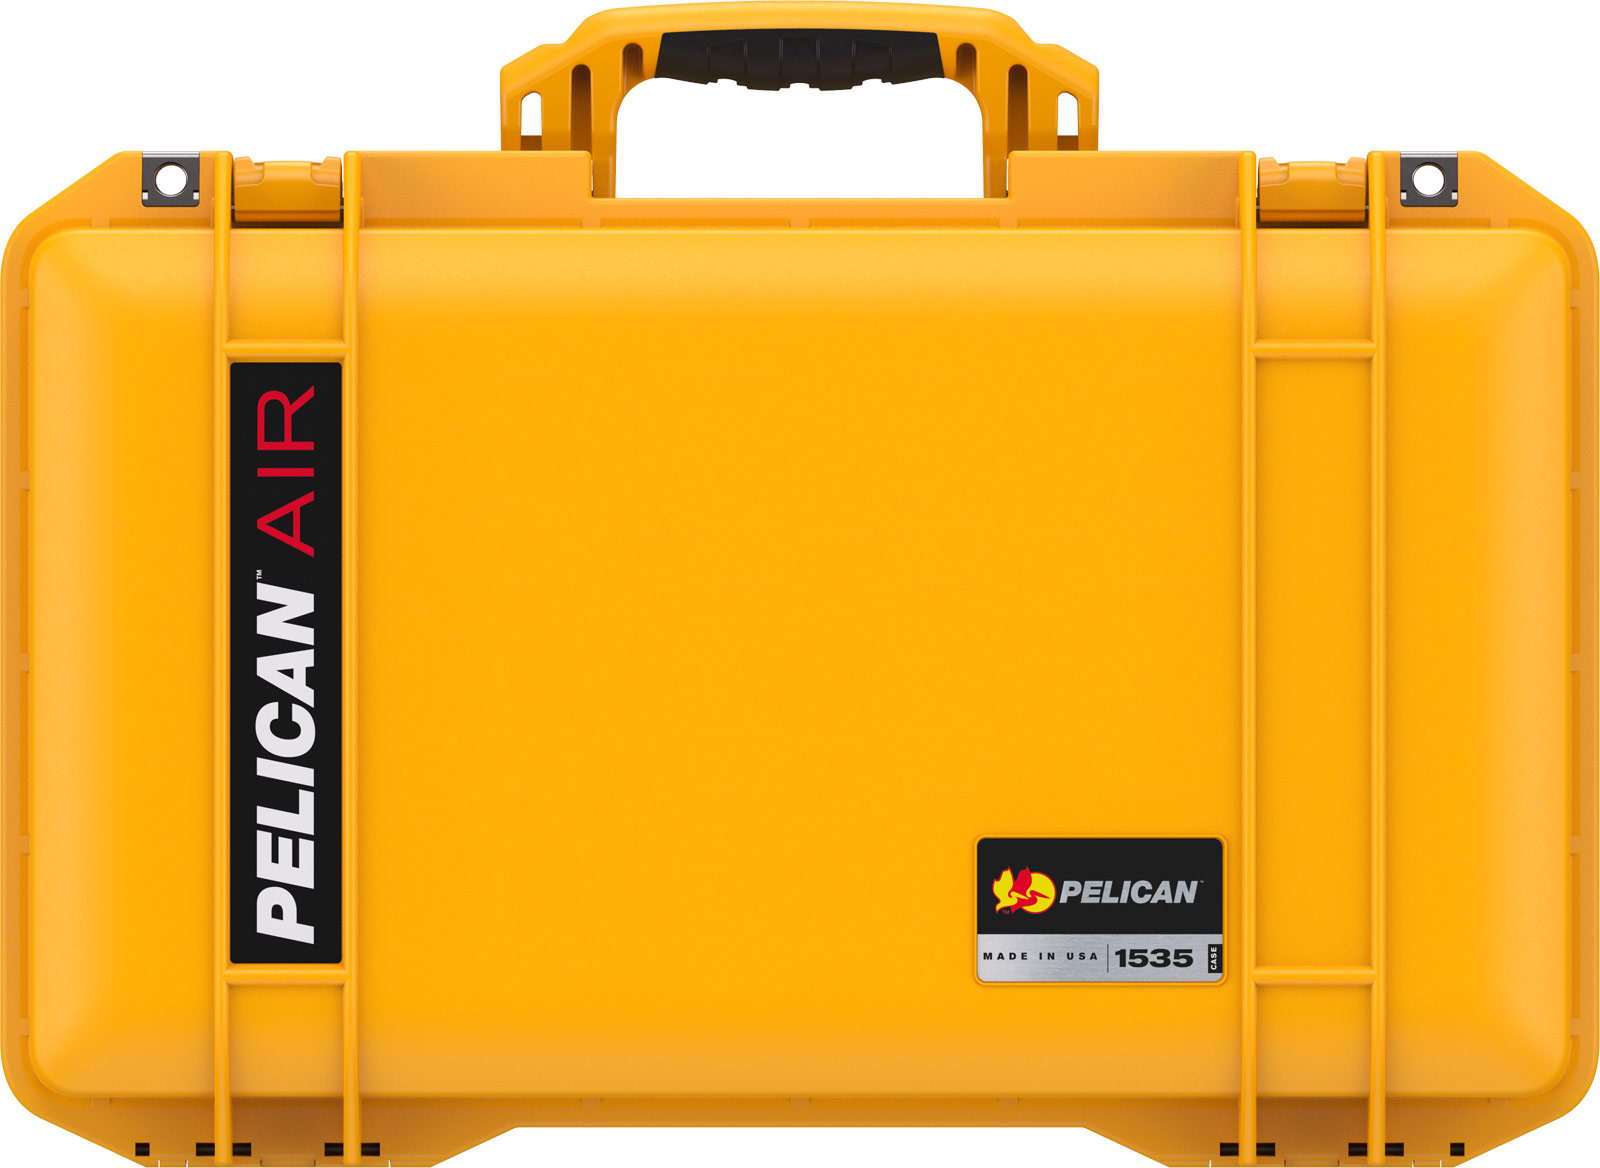 shop pelican air 1535 buy yellow carry on case